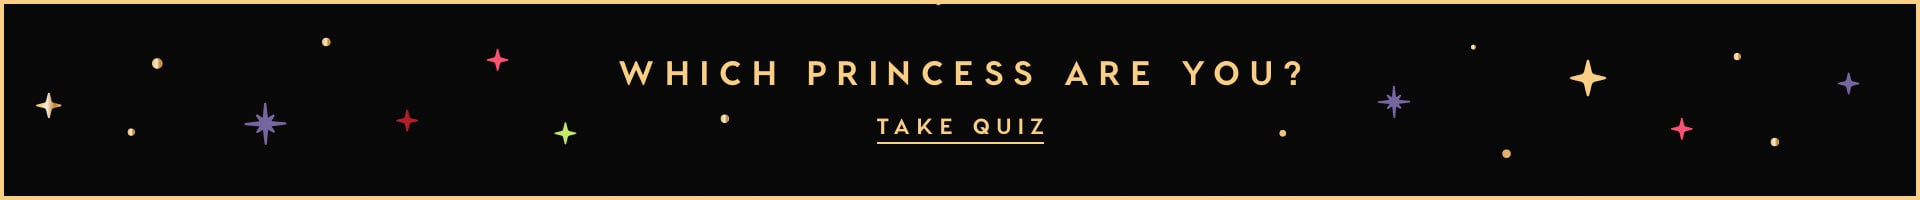 Which disney princess are you? Take the quiz!